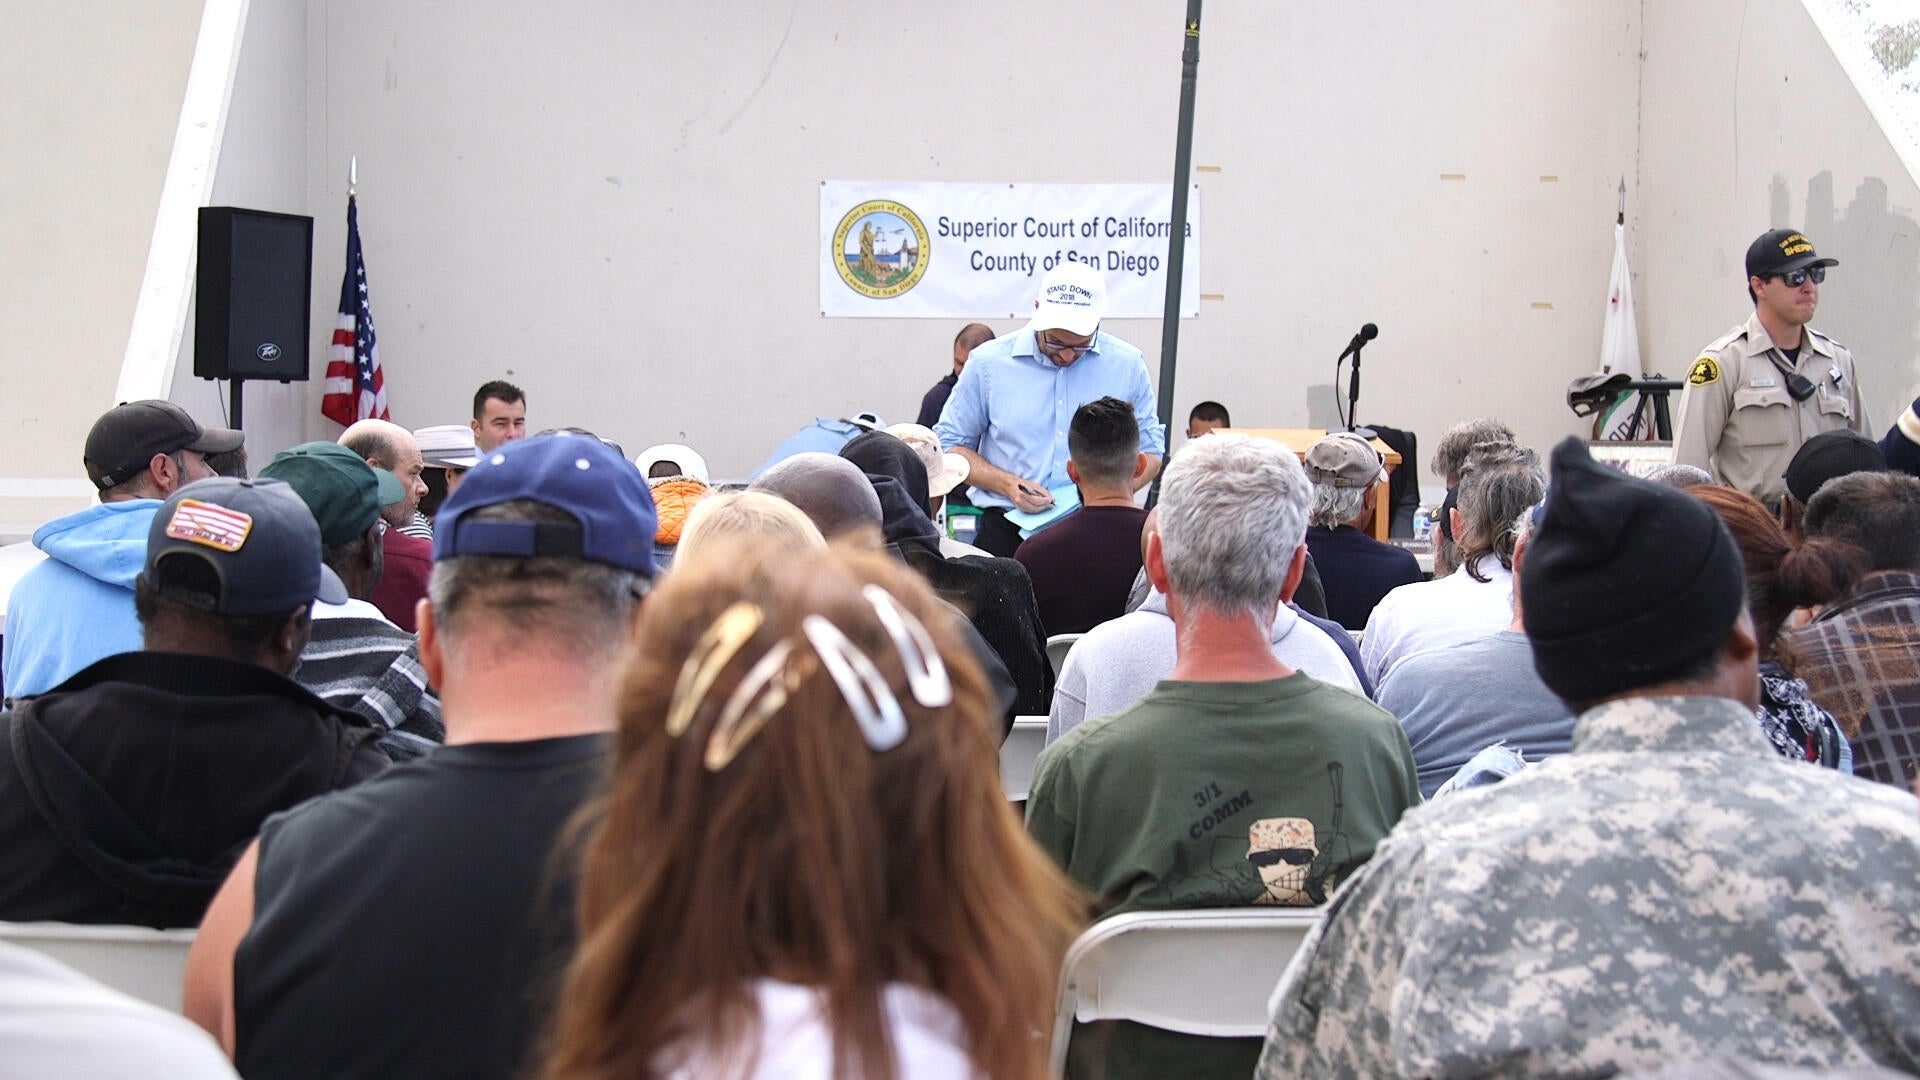 Dozens of homeless veterans register for Homeless Court, a special court session offered by the San Diego Superior Court. The goal of homeless court is to help homeless people resolve minor misdemeanors and infractions.